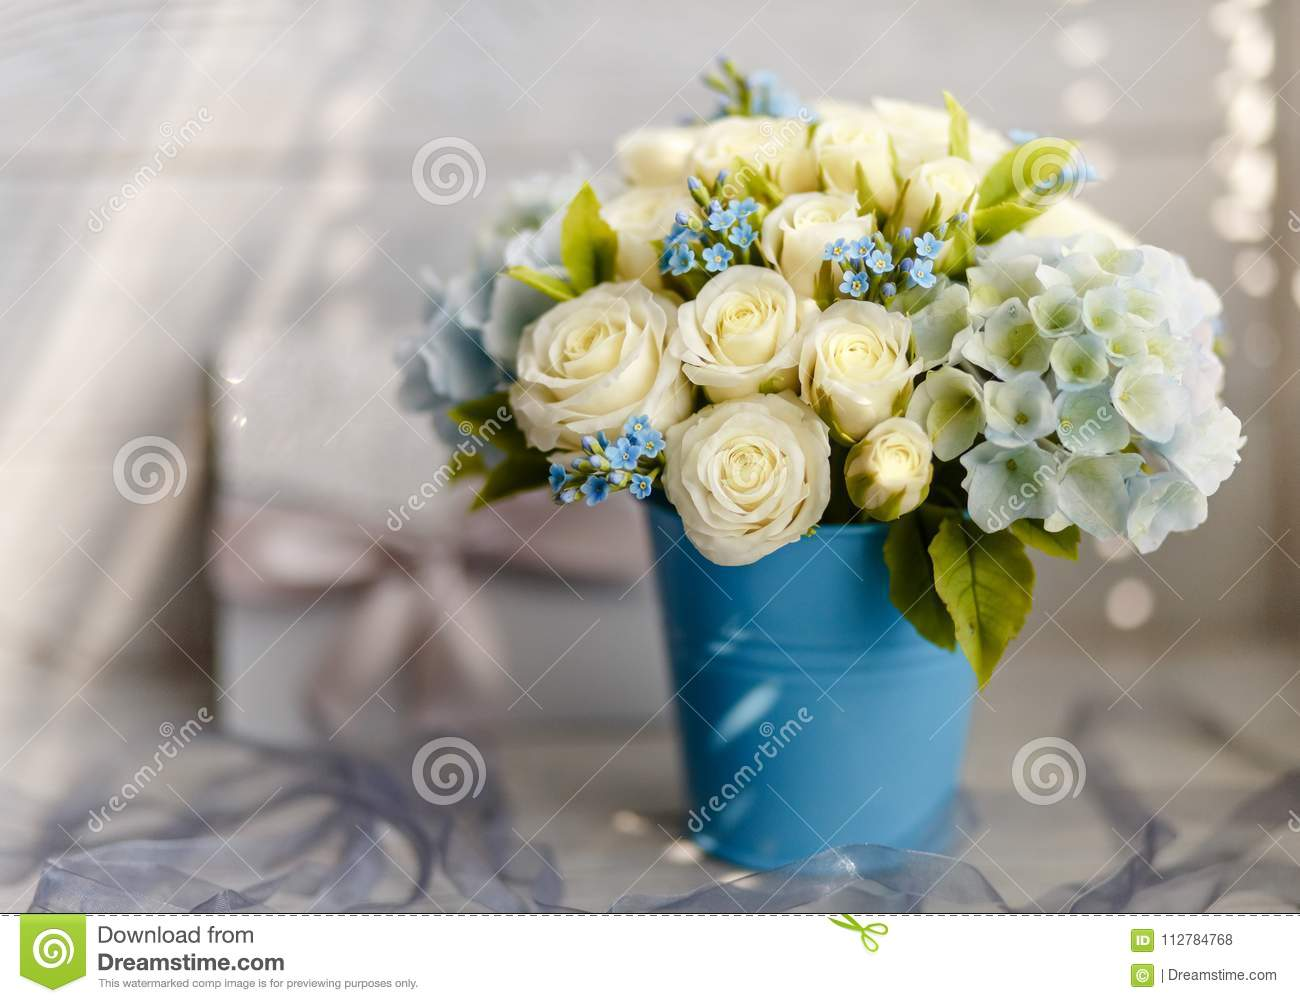 Blue And White Wedding Flowers Stock Photo Image Of Celebrating